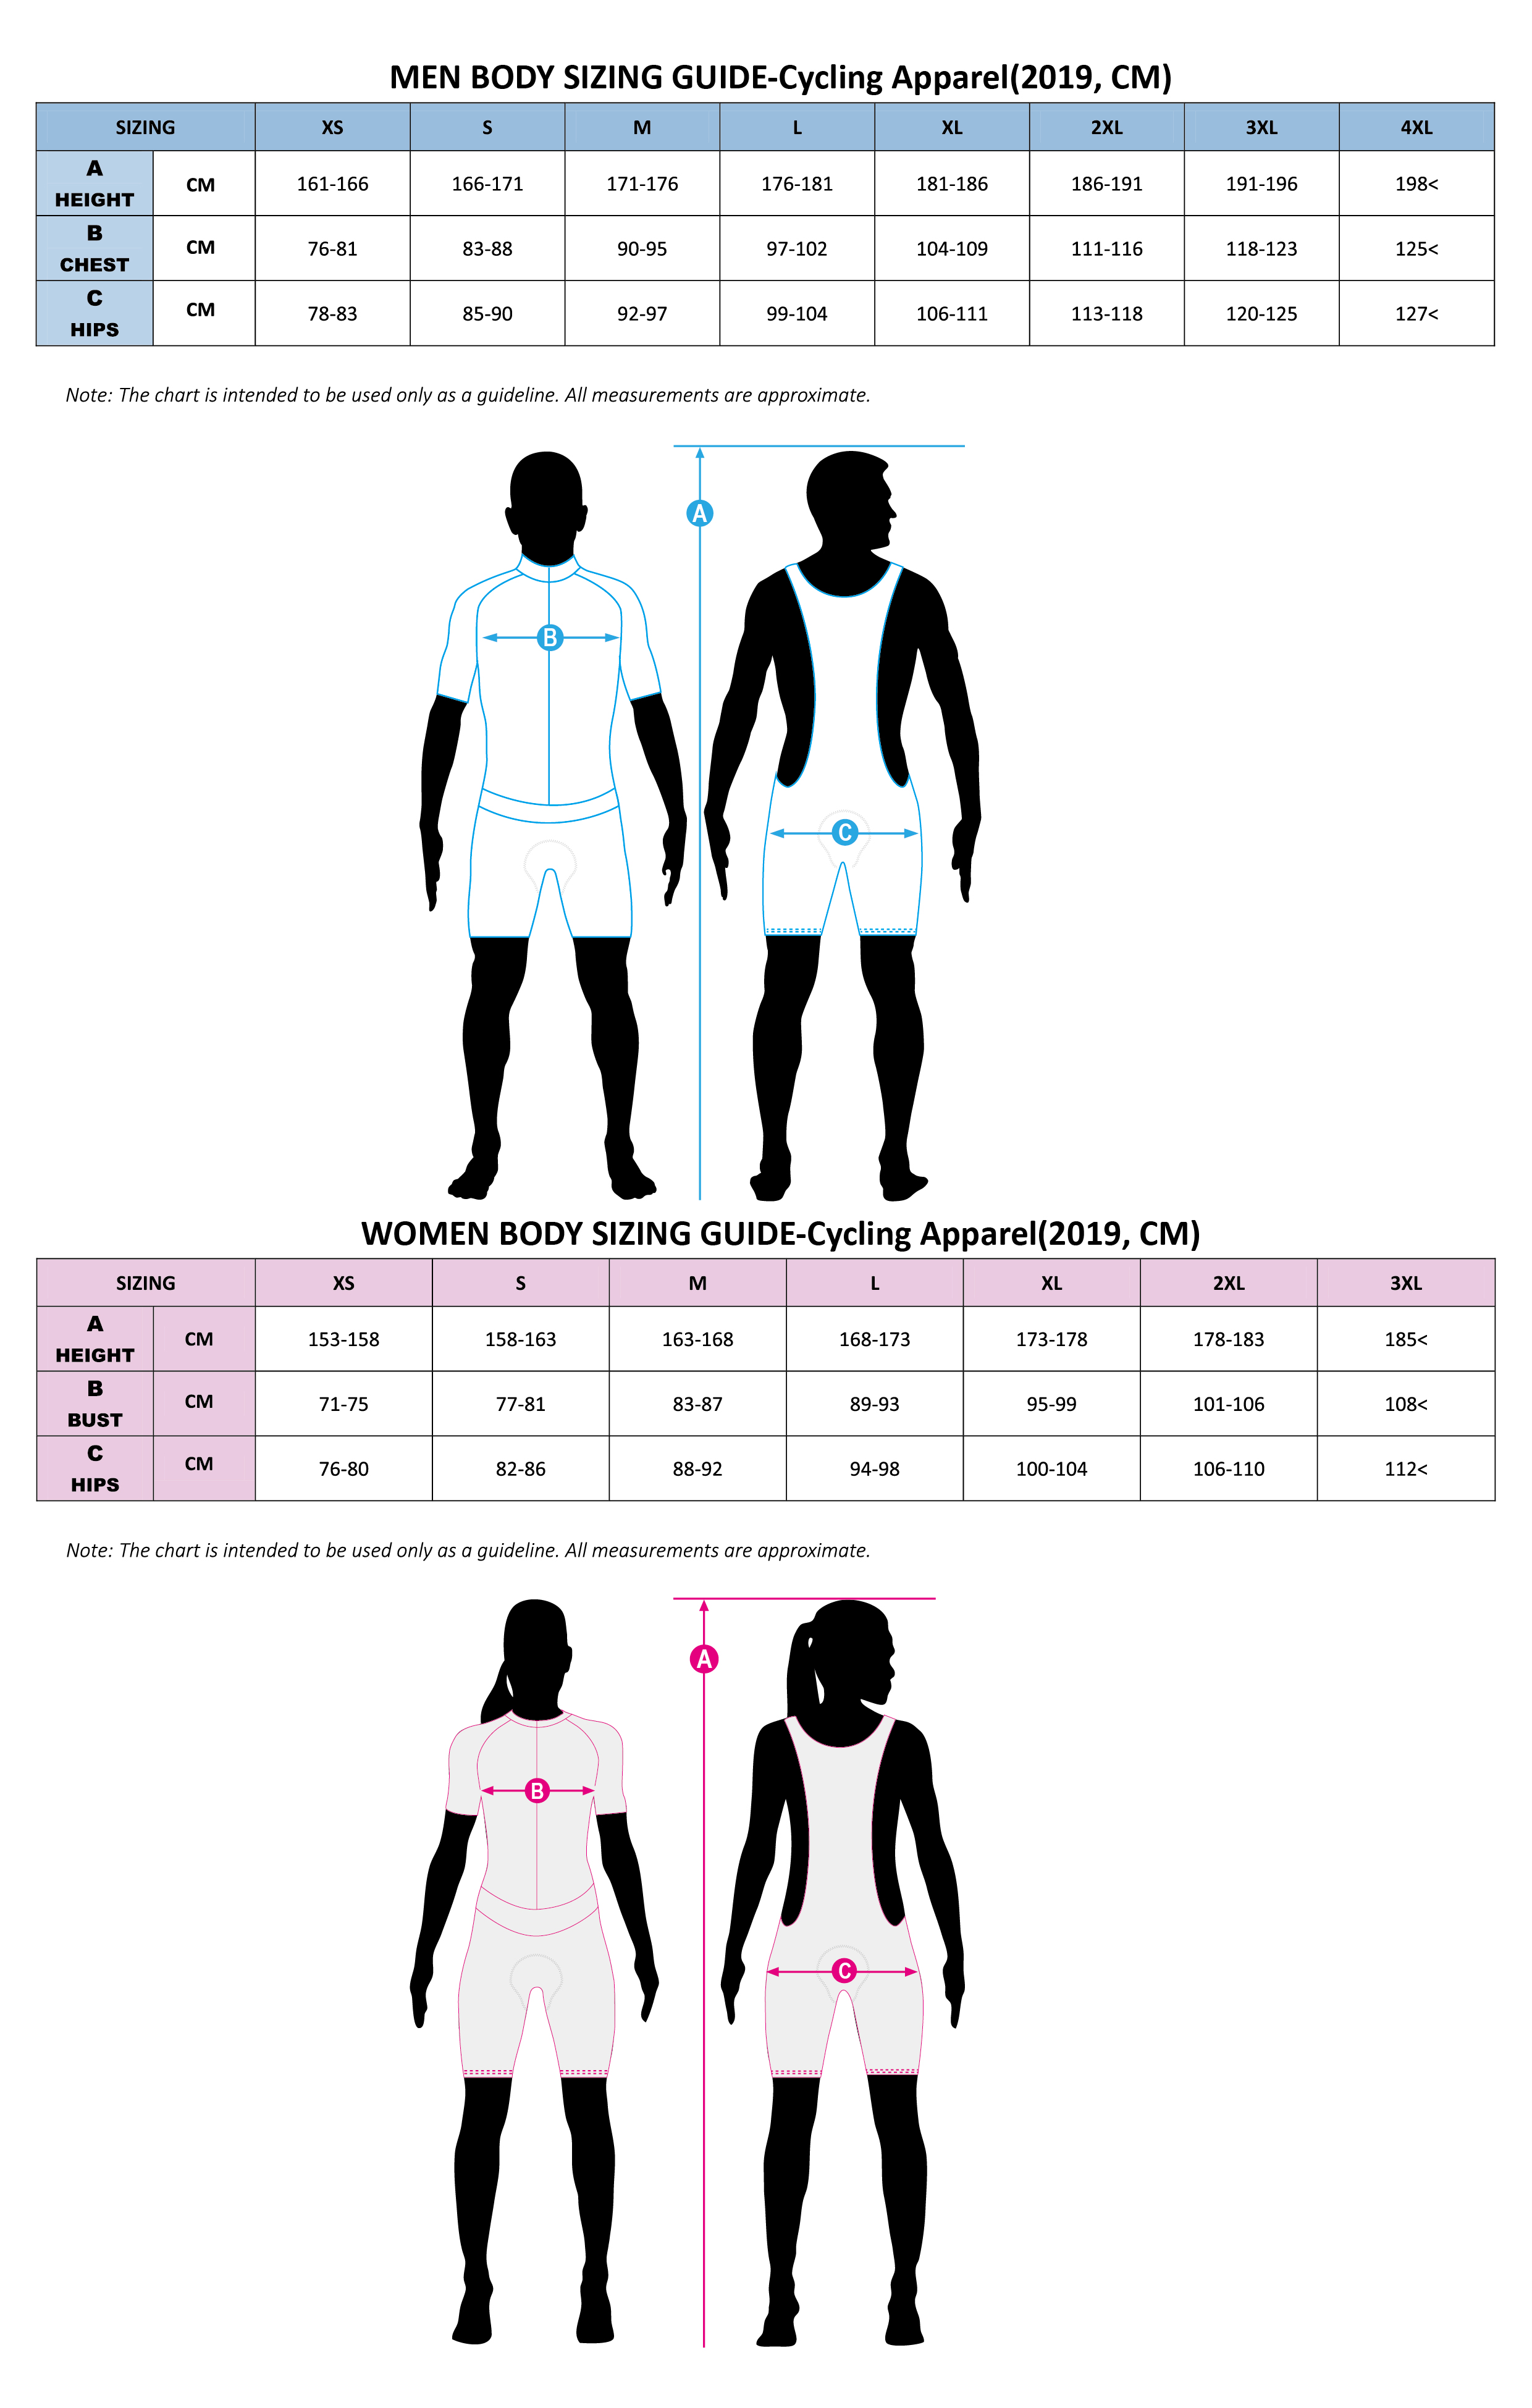 Body Sizing-Cycling Apparel